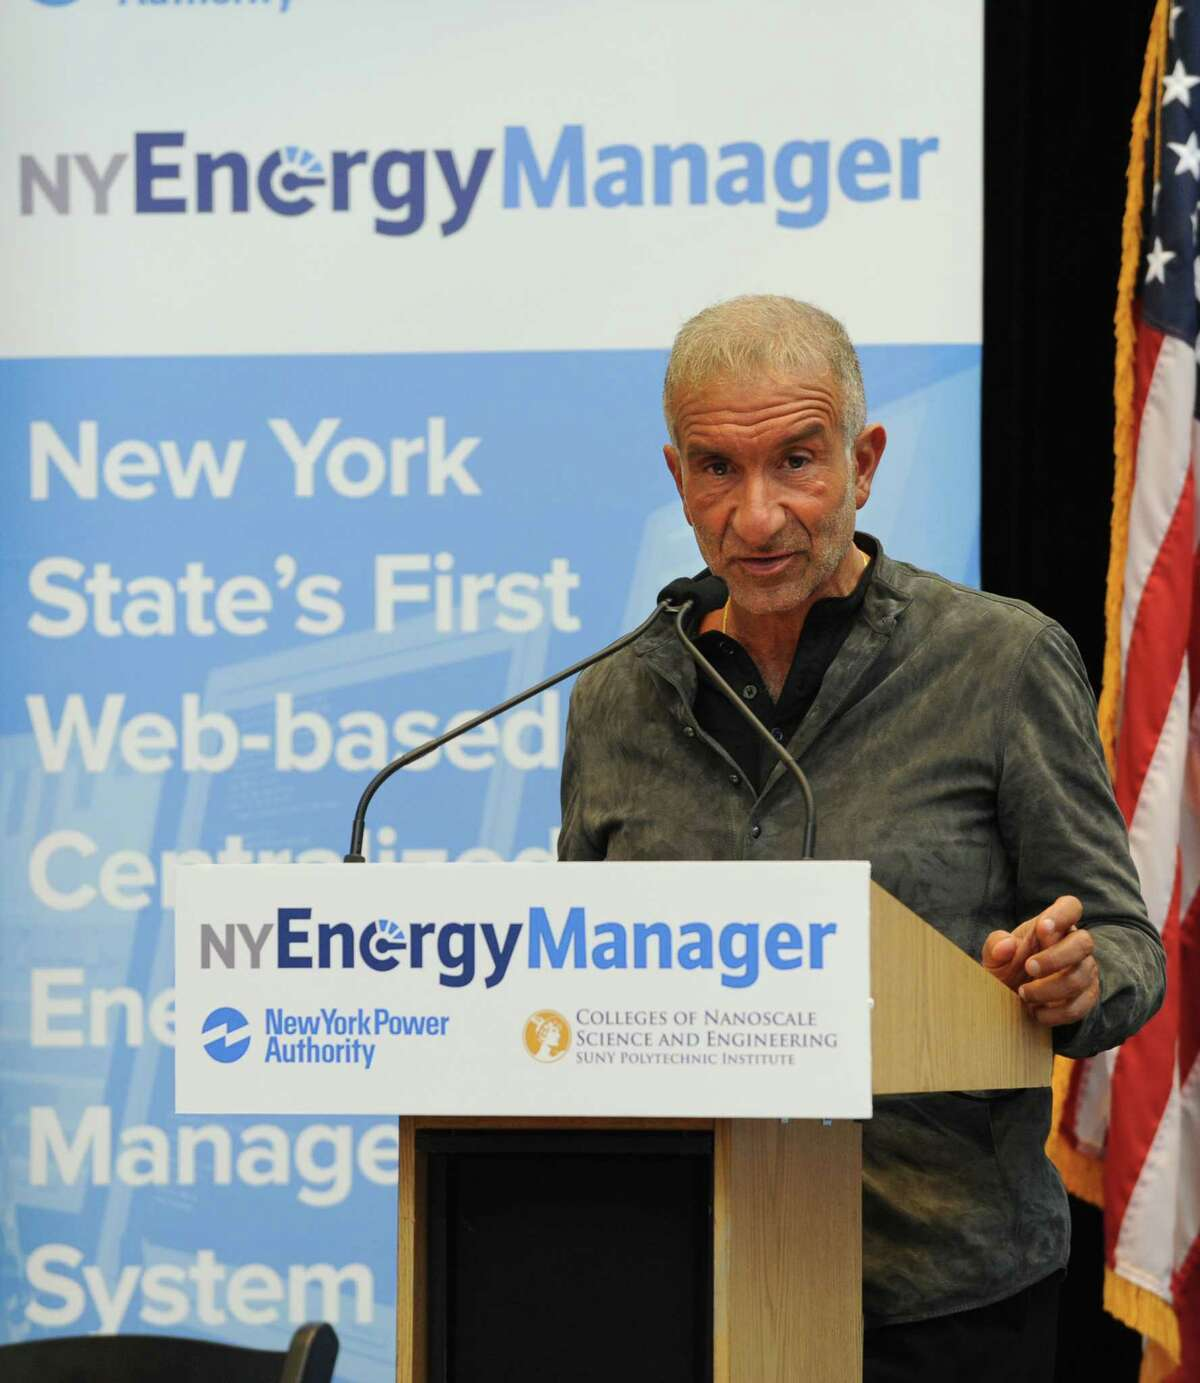 Senior Vice President and Chief Executive Officer, College of Nanoscale Science and Engineering (CNSE) Alain Kaloyeros speaks as New York Power Authority and CNSE at SUNY Polytechnic Institute hold a joint news conference to announce the launch of New York State's first energy management network operations center - the NY Energy Manager (NYEM) -located at CNSE Tuesday, Oct. 21, 2014 in Albany, N.Y. (Lori Van Buren / Times Union archive)